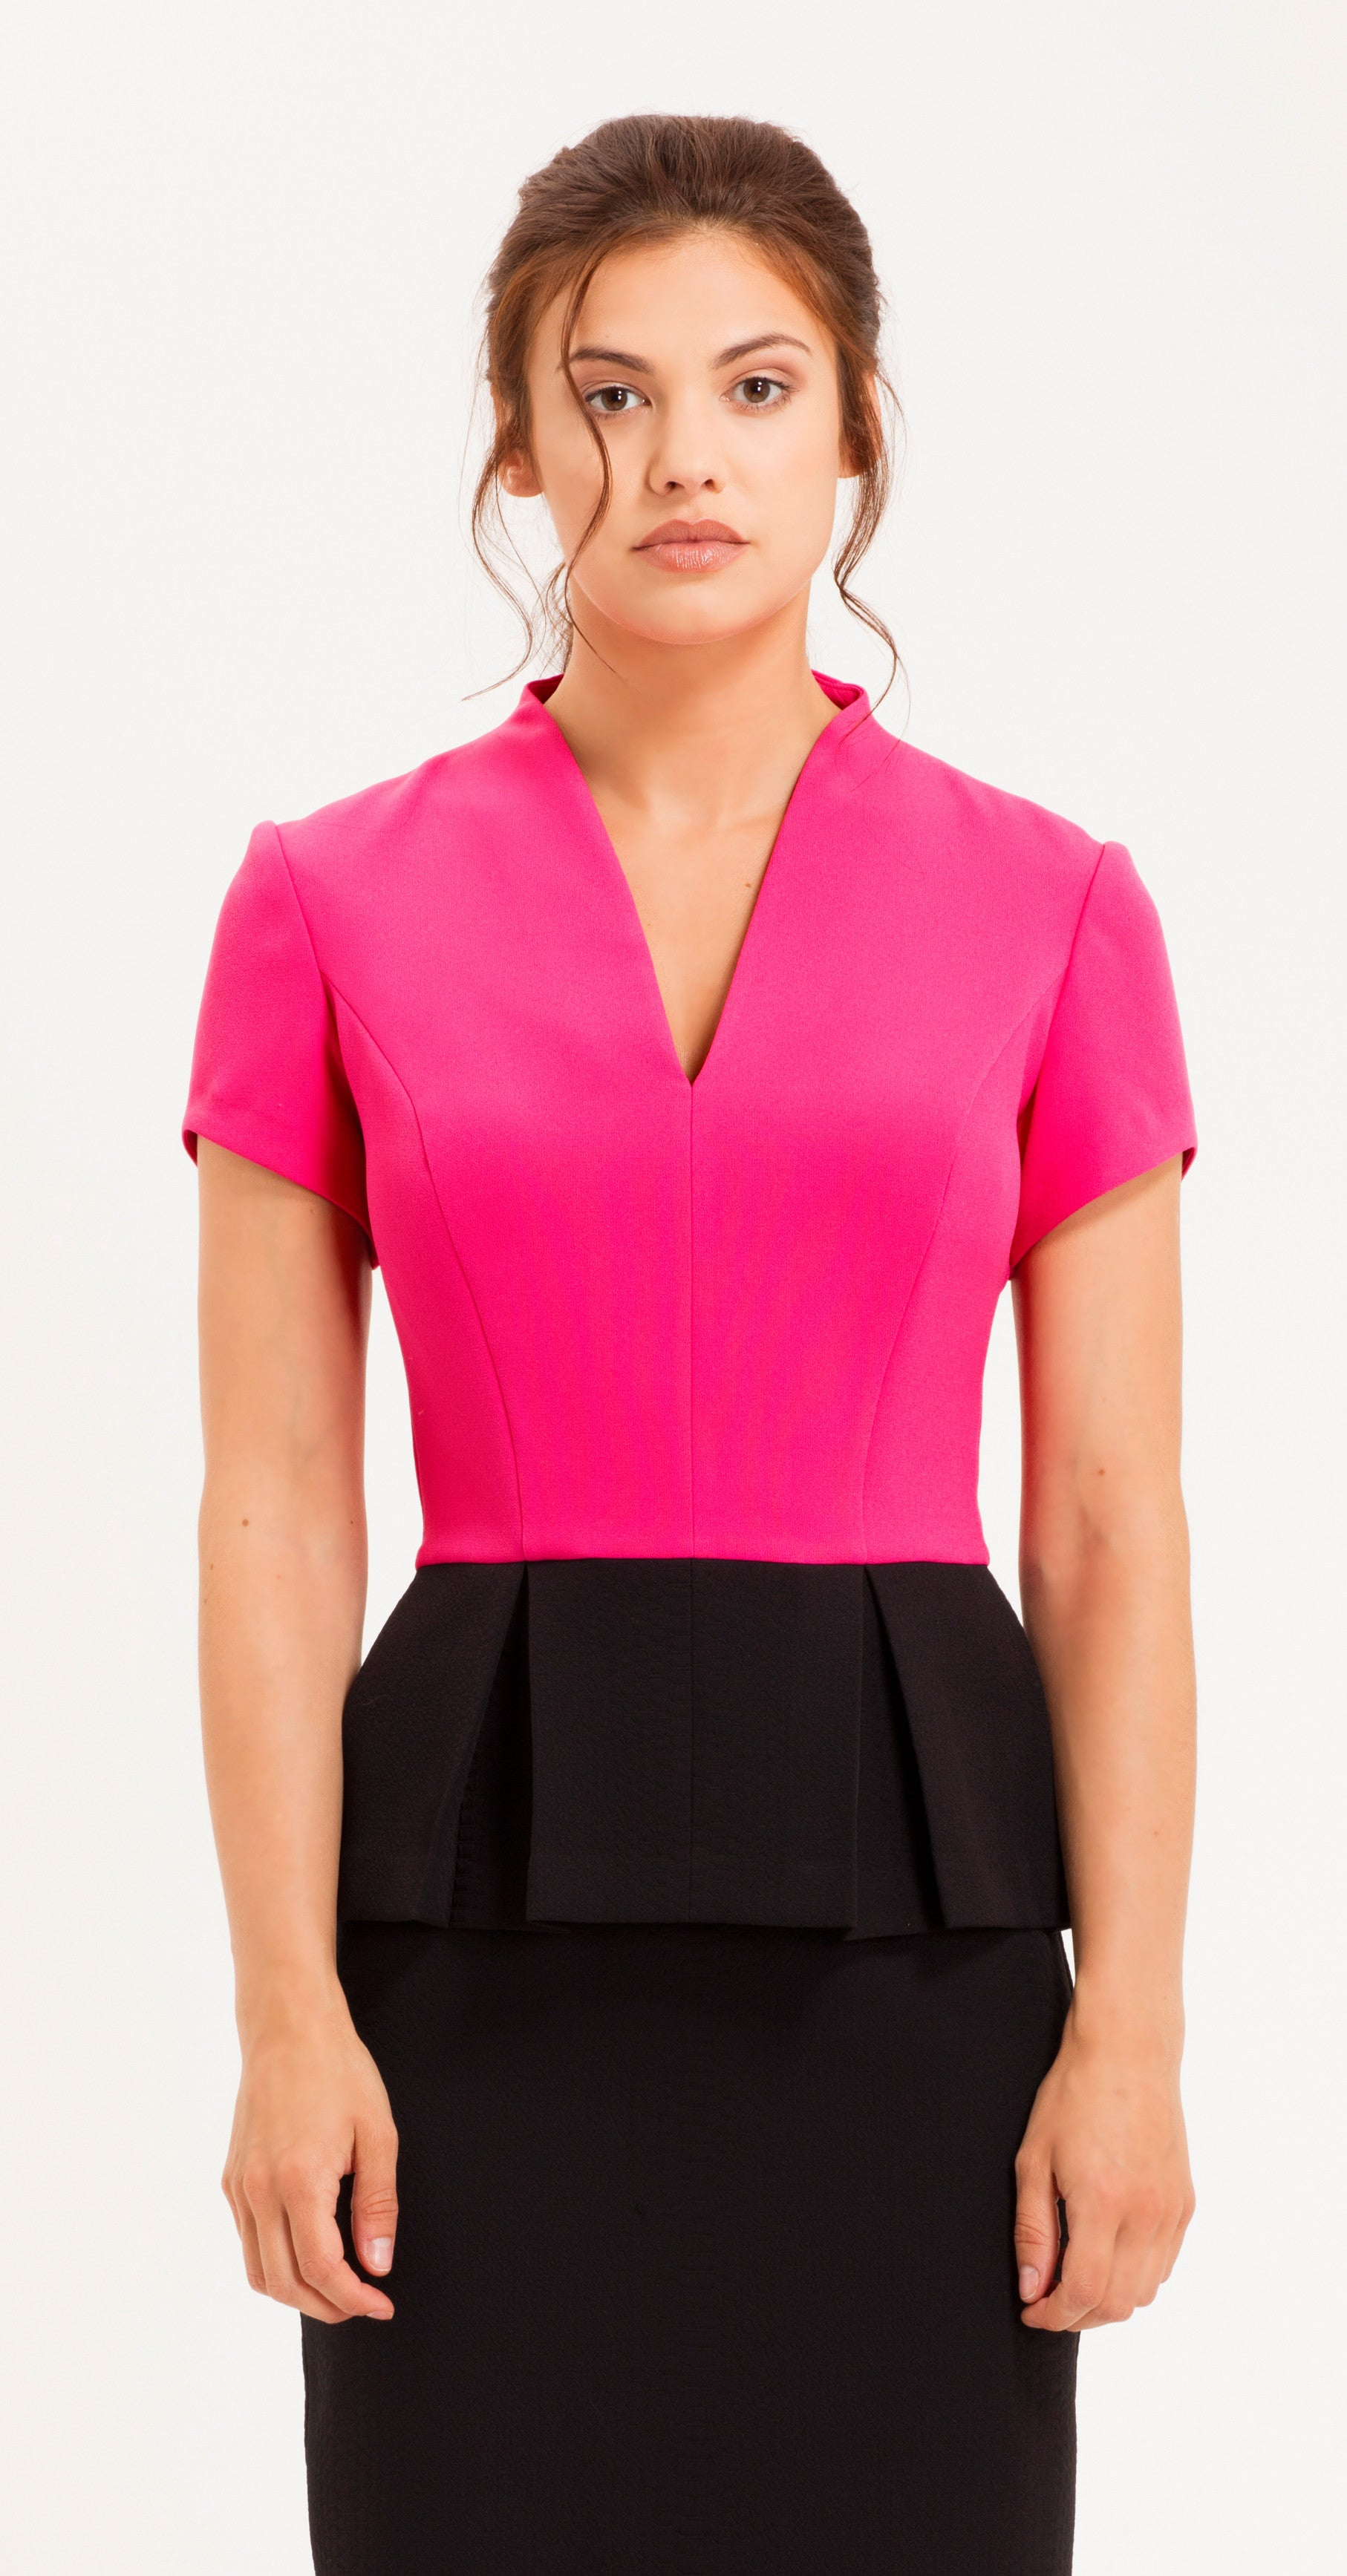 SAVONA TOP HOT PINK & BLACK